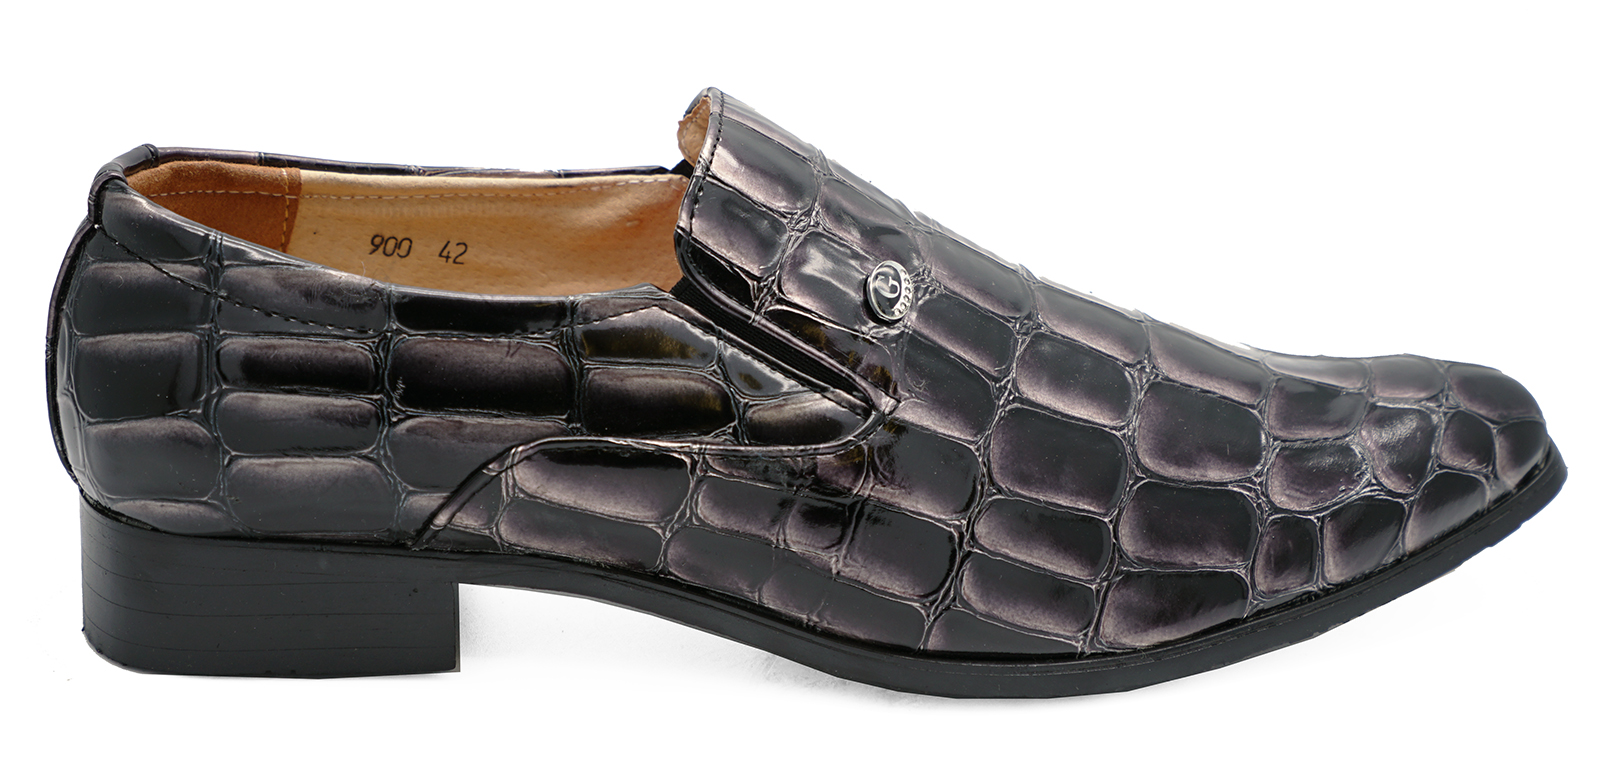 thumbnail 6 - MENS-SLIP-ON-WORK-WEDDING-SMART-CASUAL-LOAFERS-FORMAL-SUIT-SHOES-SIZES-6-11